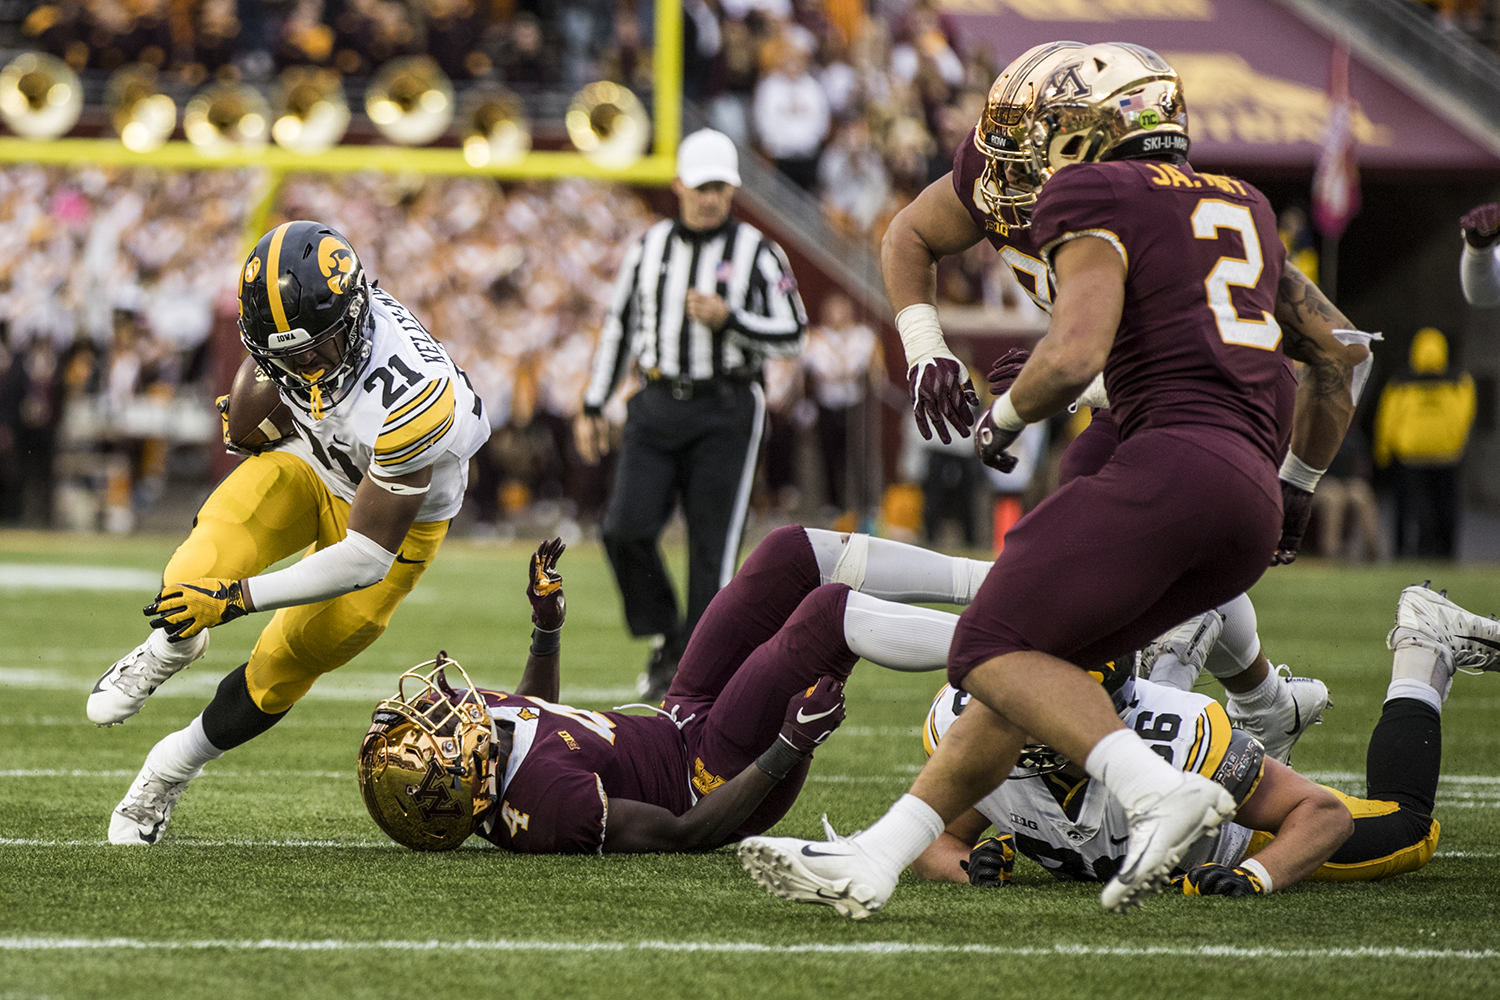 Iowa running back Ivory Kelly-Martin carries the ball during Iowa's game against Minnesota at TCF Bank Stadium on Saturday, October 6, 2018. The Hawkeyes defeated the Golden Gophers 48-31.